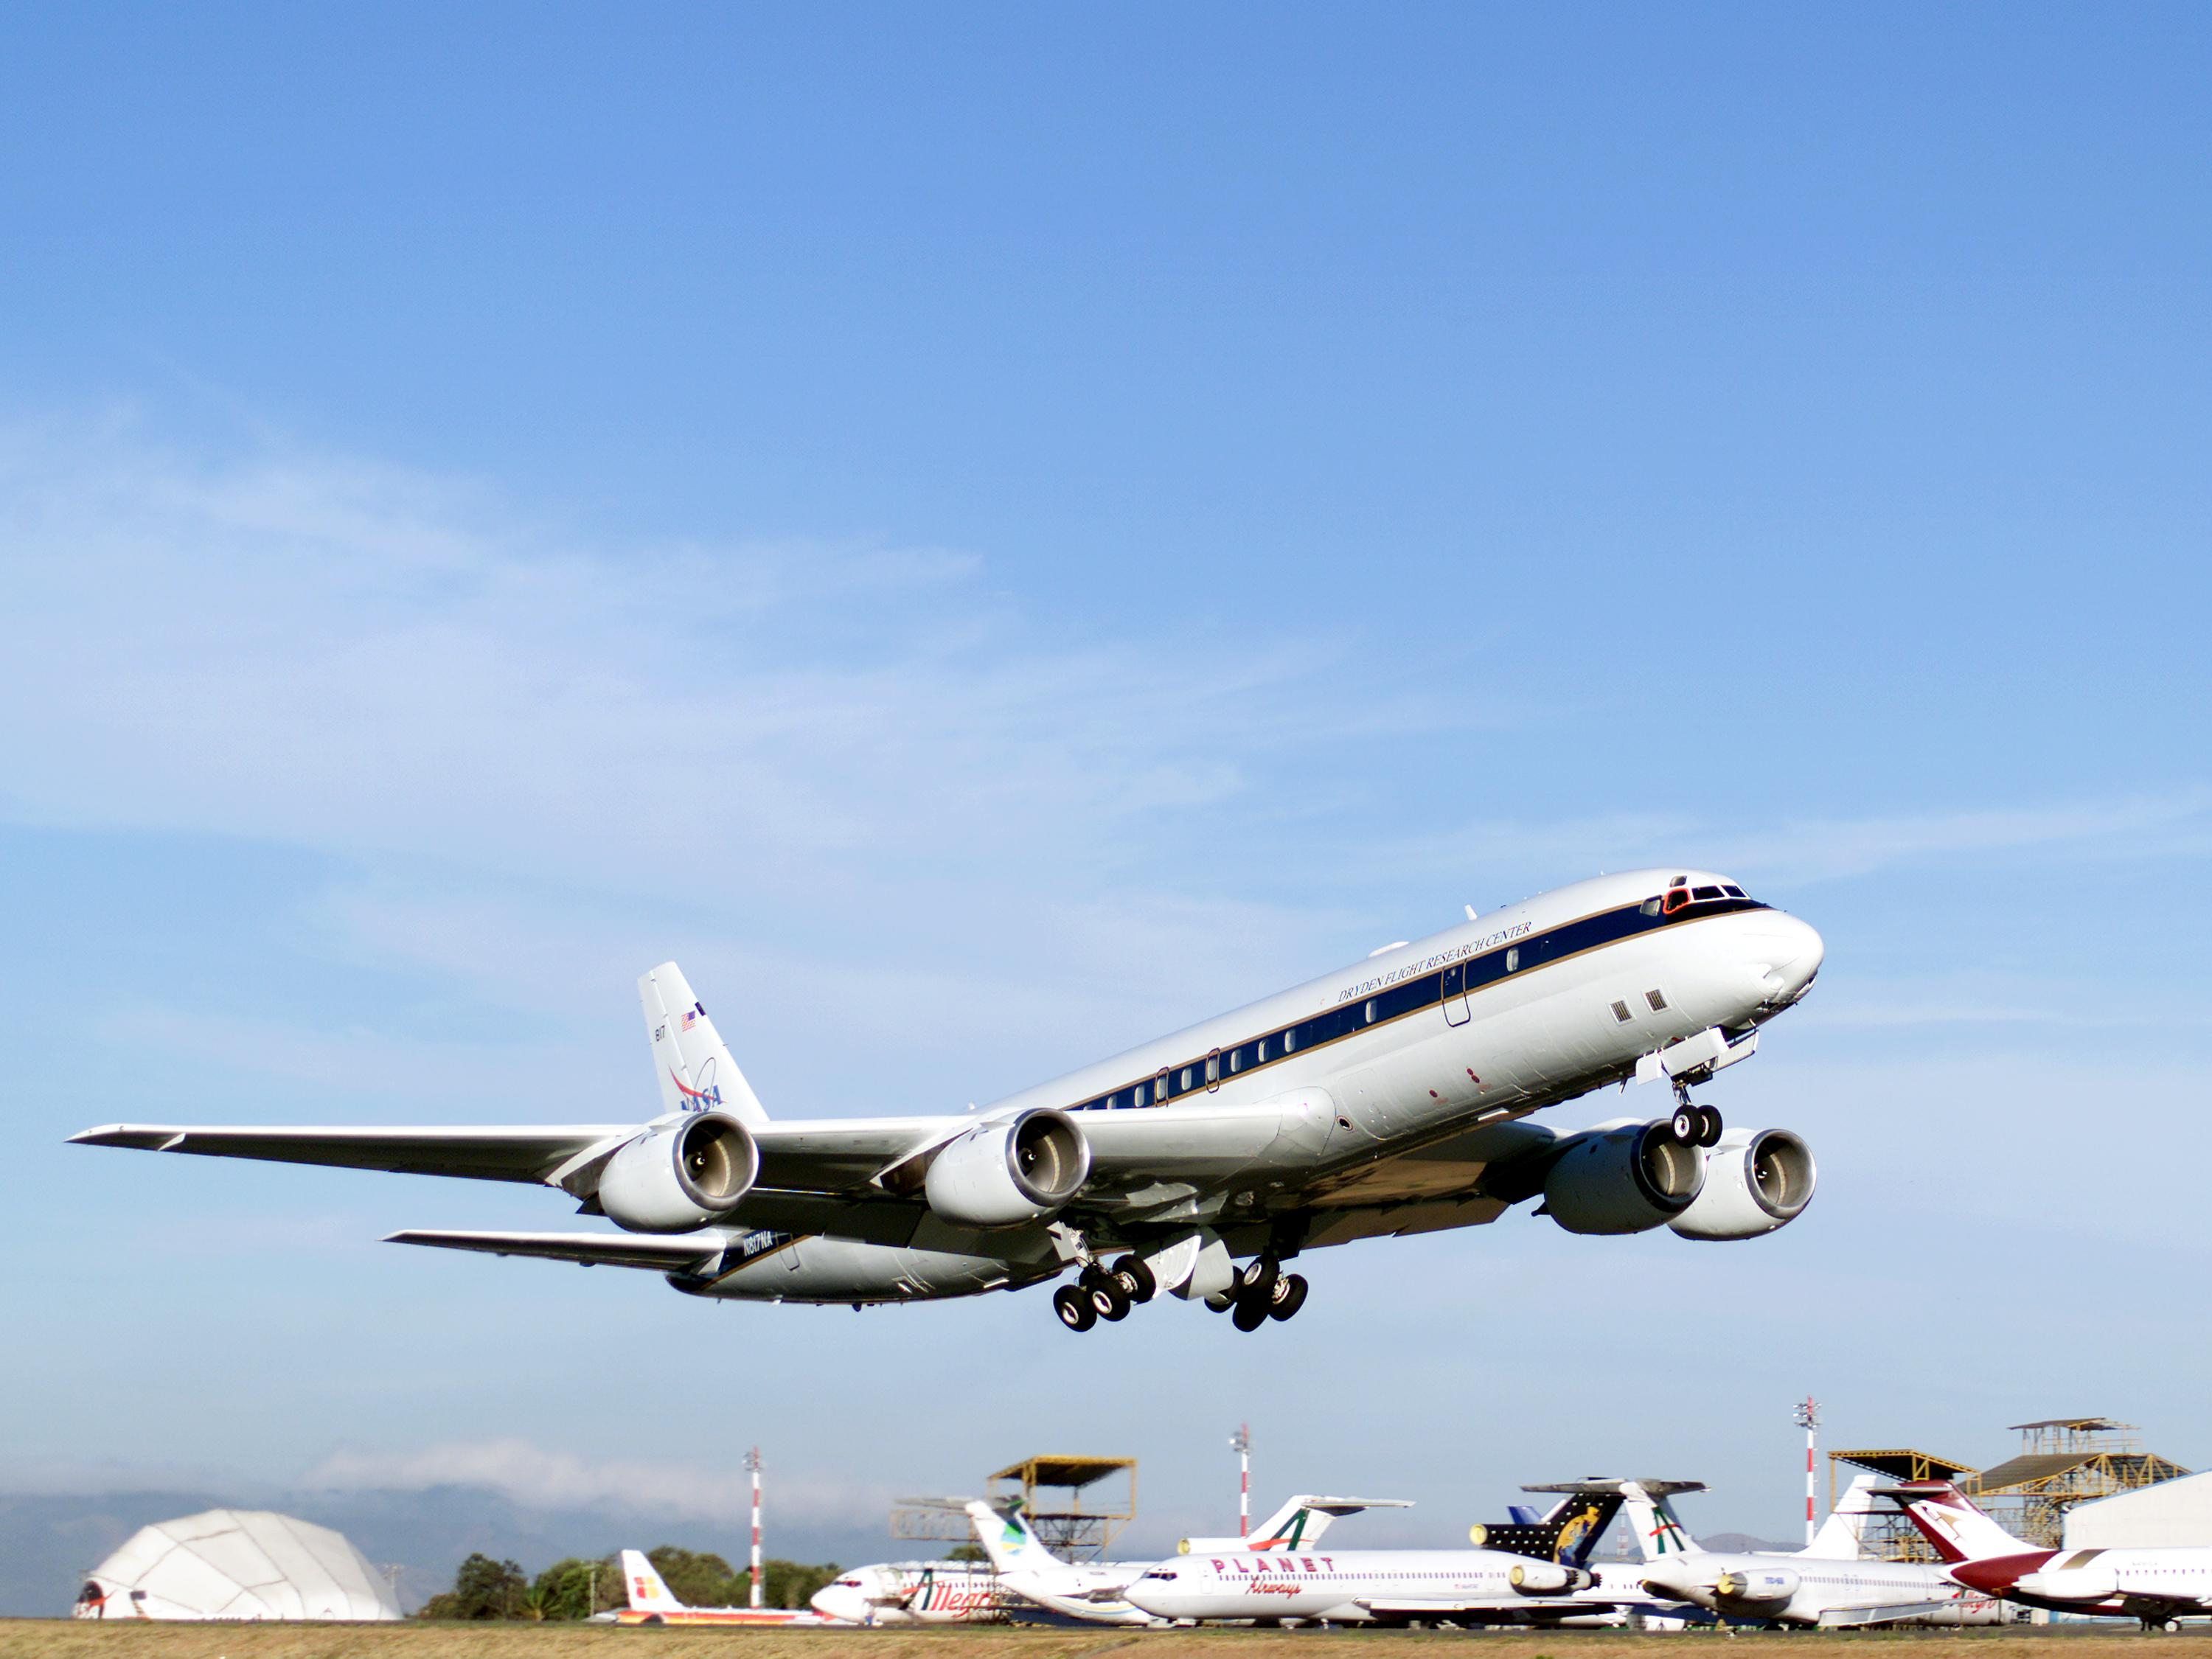 DC-8 Sets off on Airborne Synthetic Aperture Radar (AirSAR) Mission